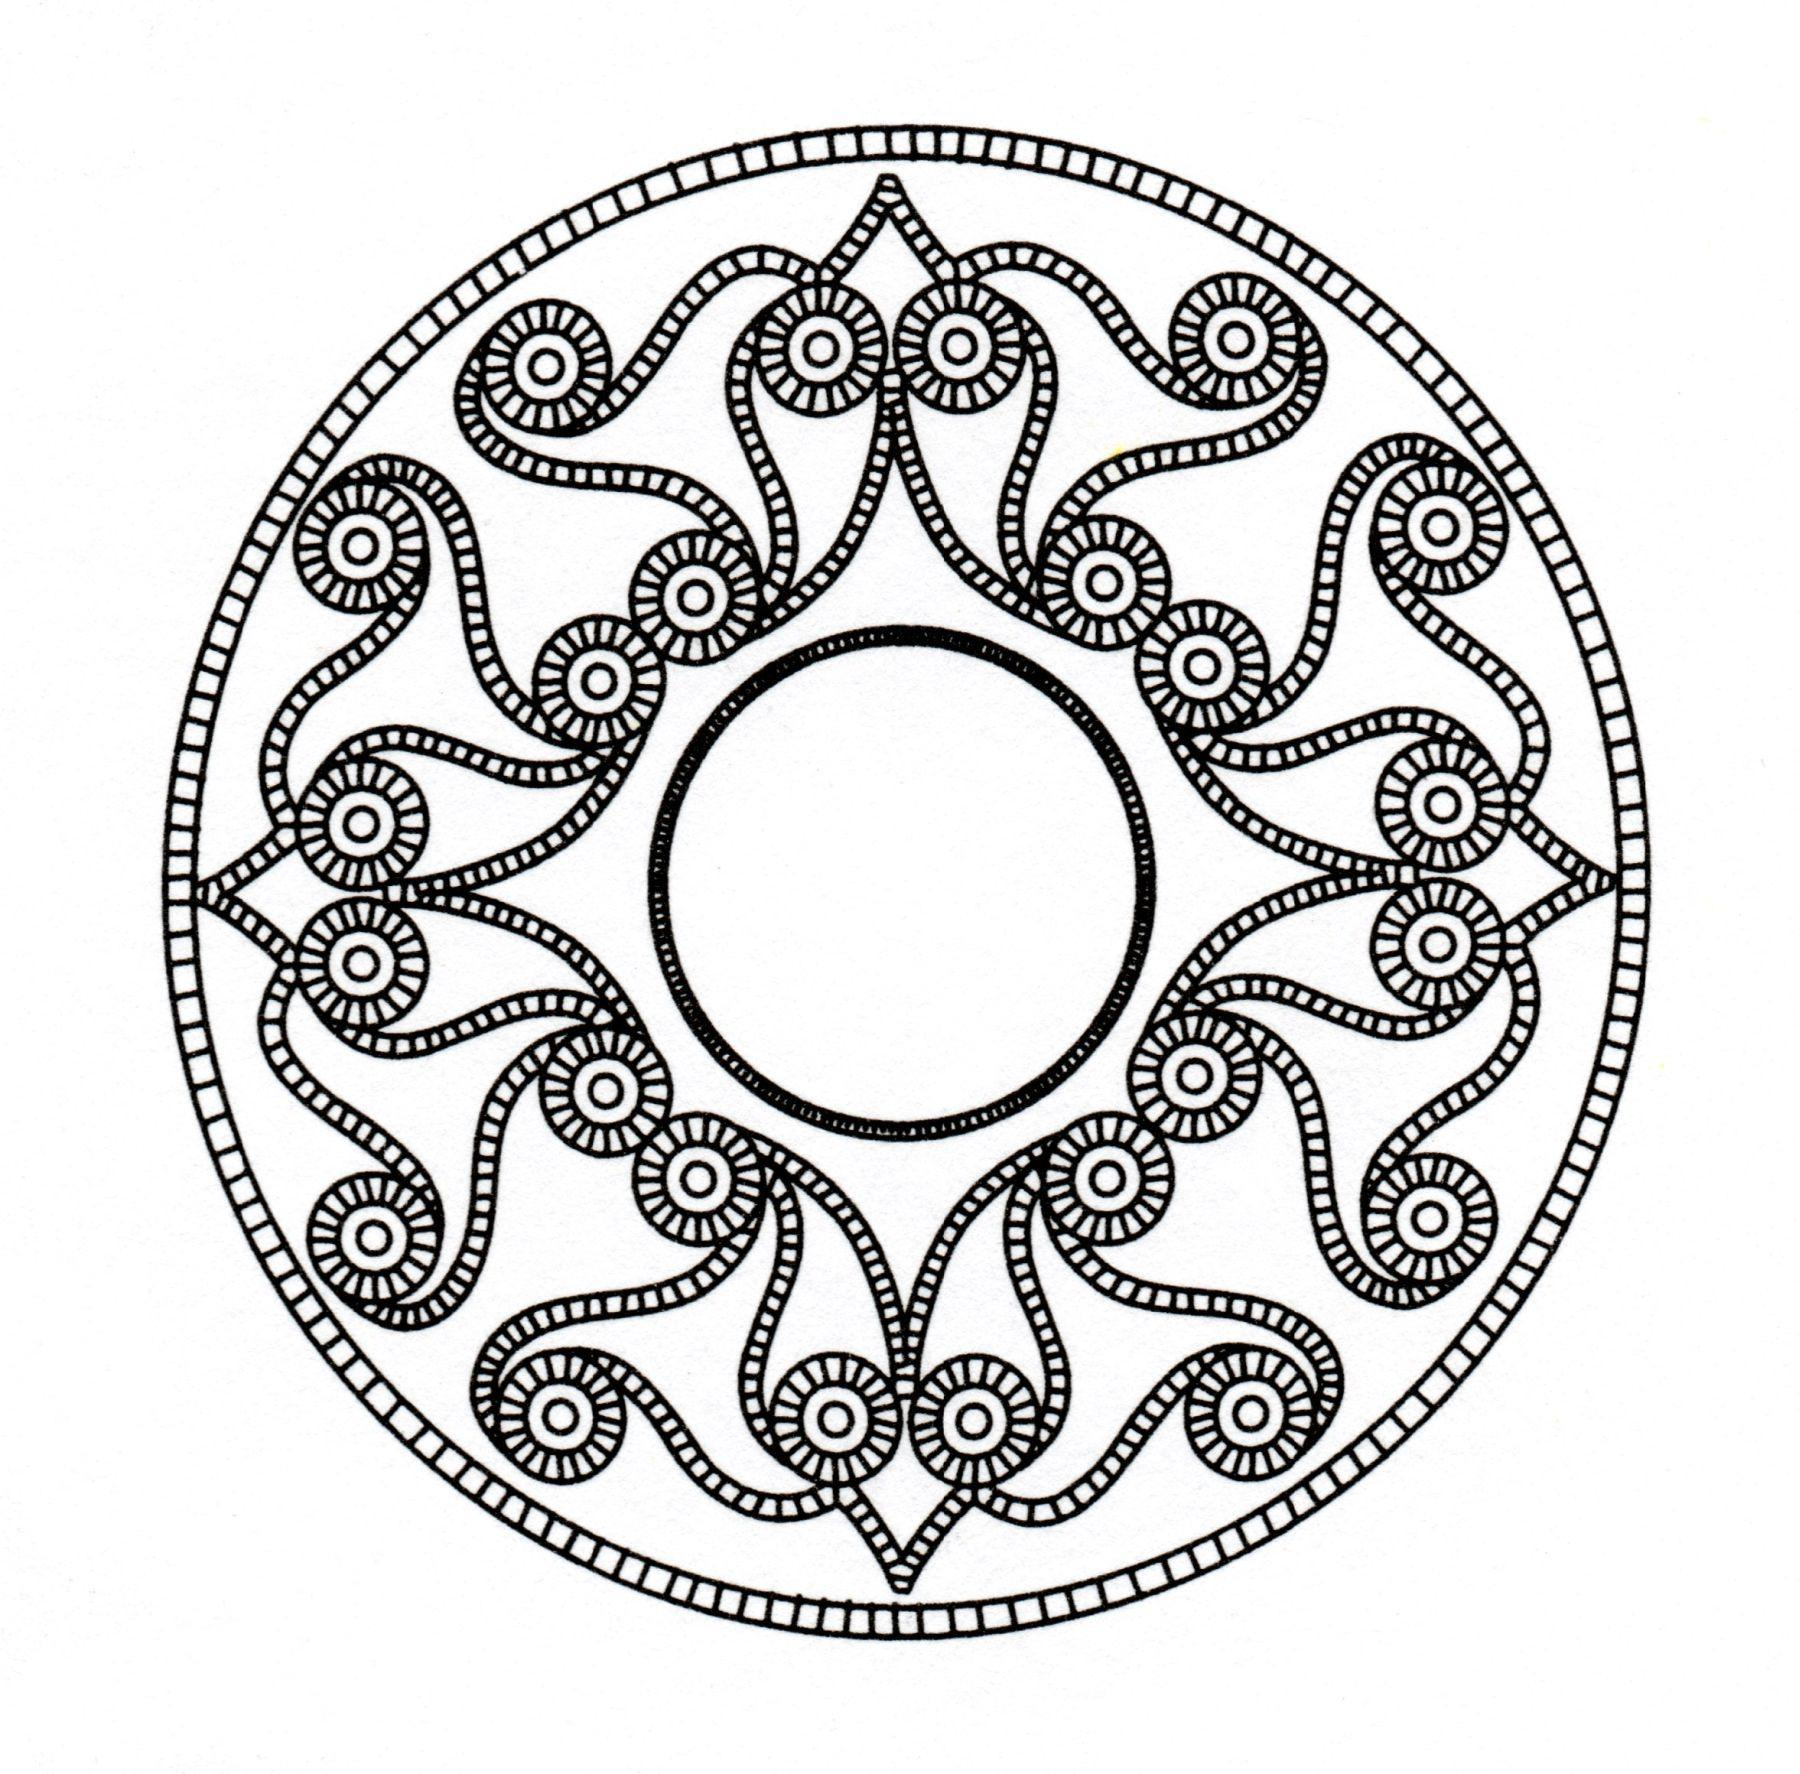 Celtic art drawing looking like a Mandala